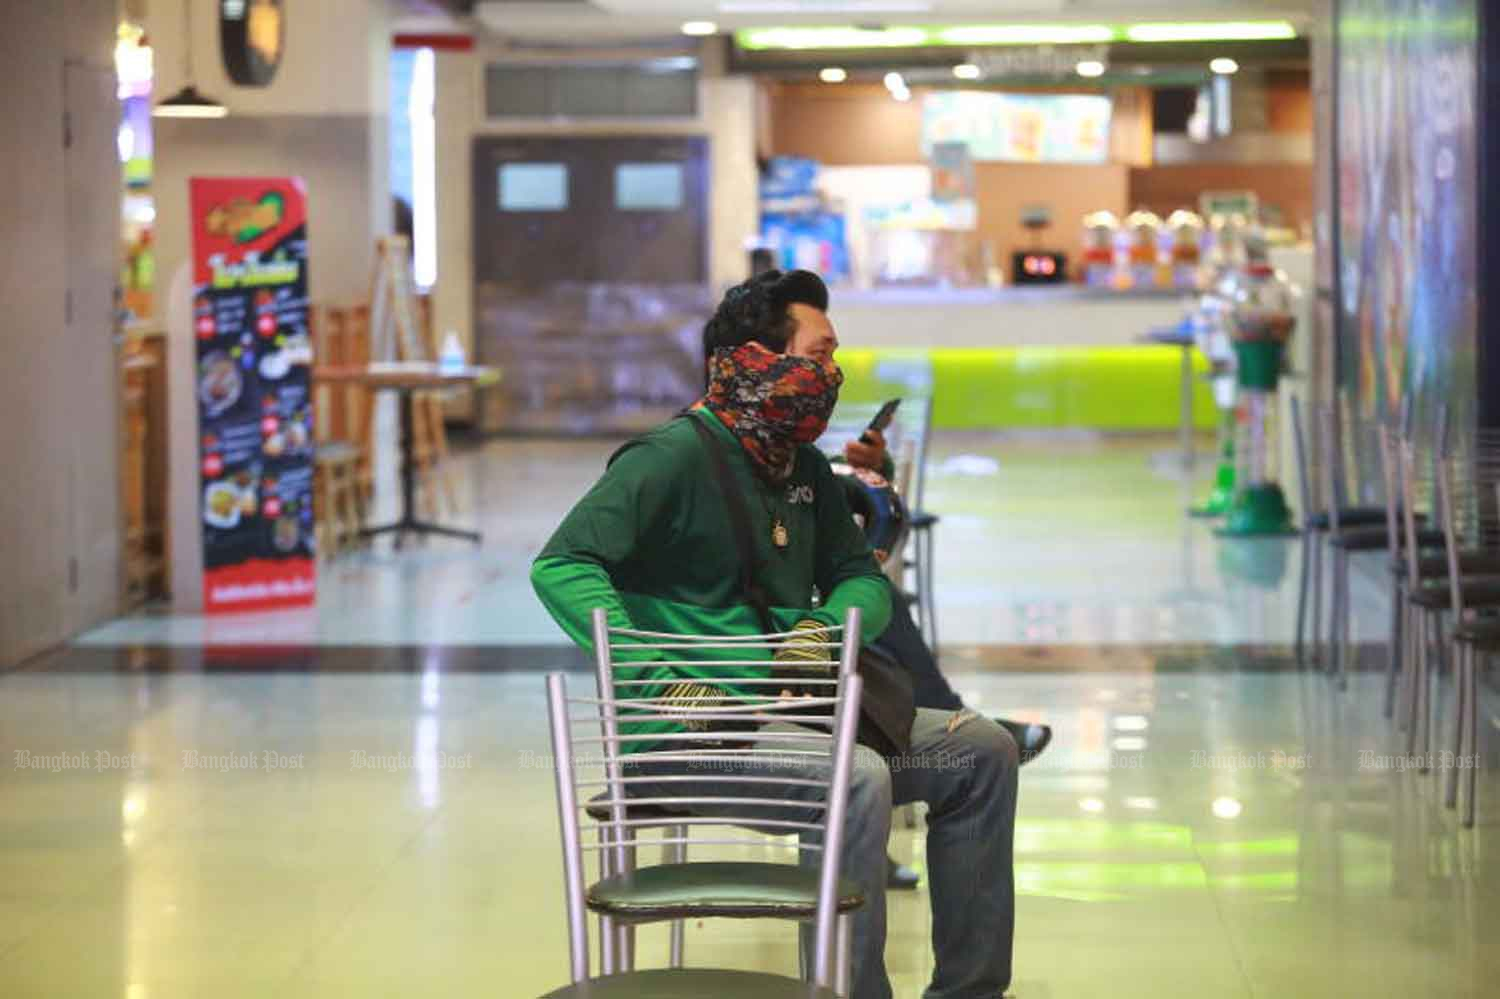 A food delivery man waits for his customer's meal at a shopping centre in Samut Prakan province. (File photo: Somchai Poomlard)